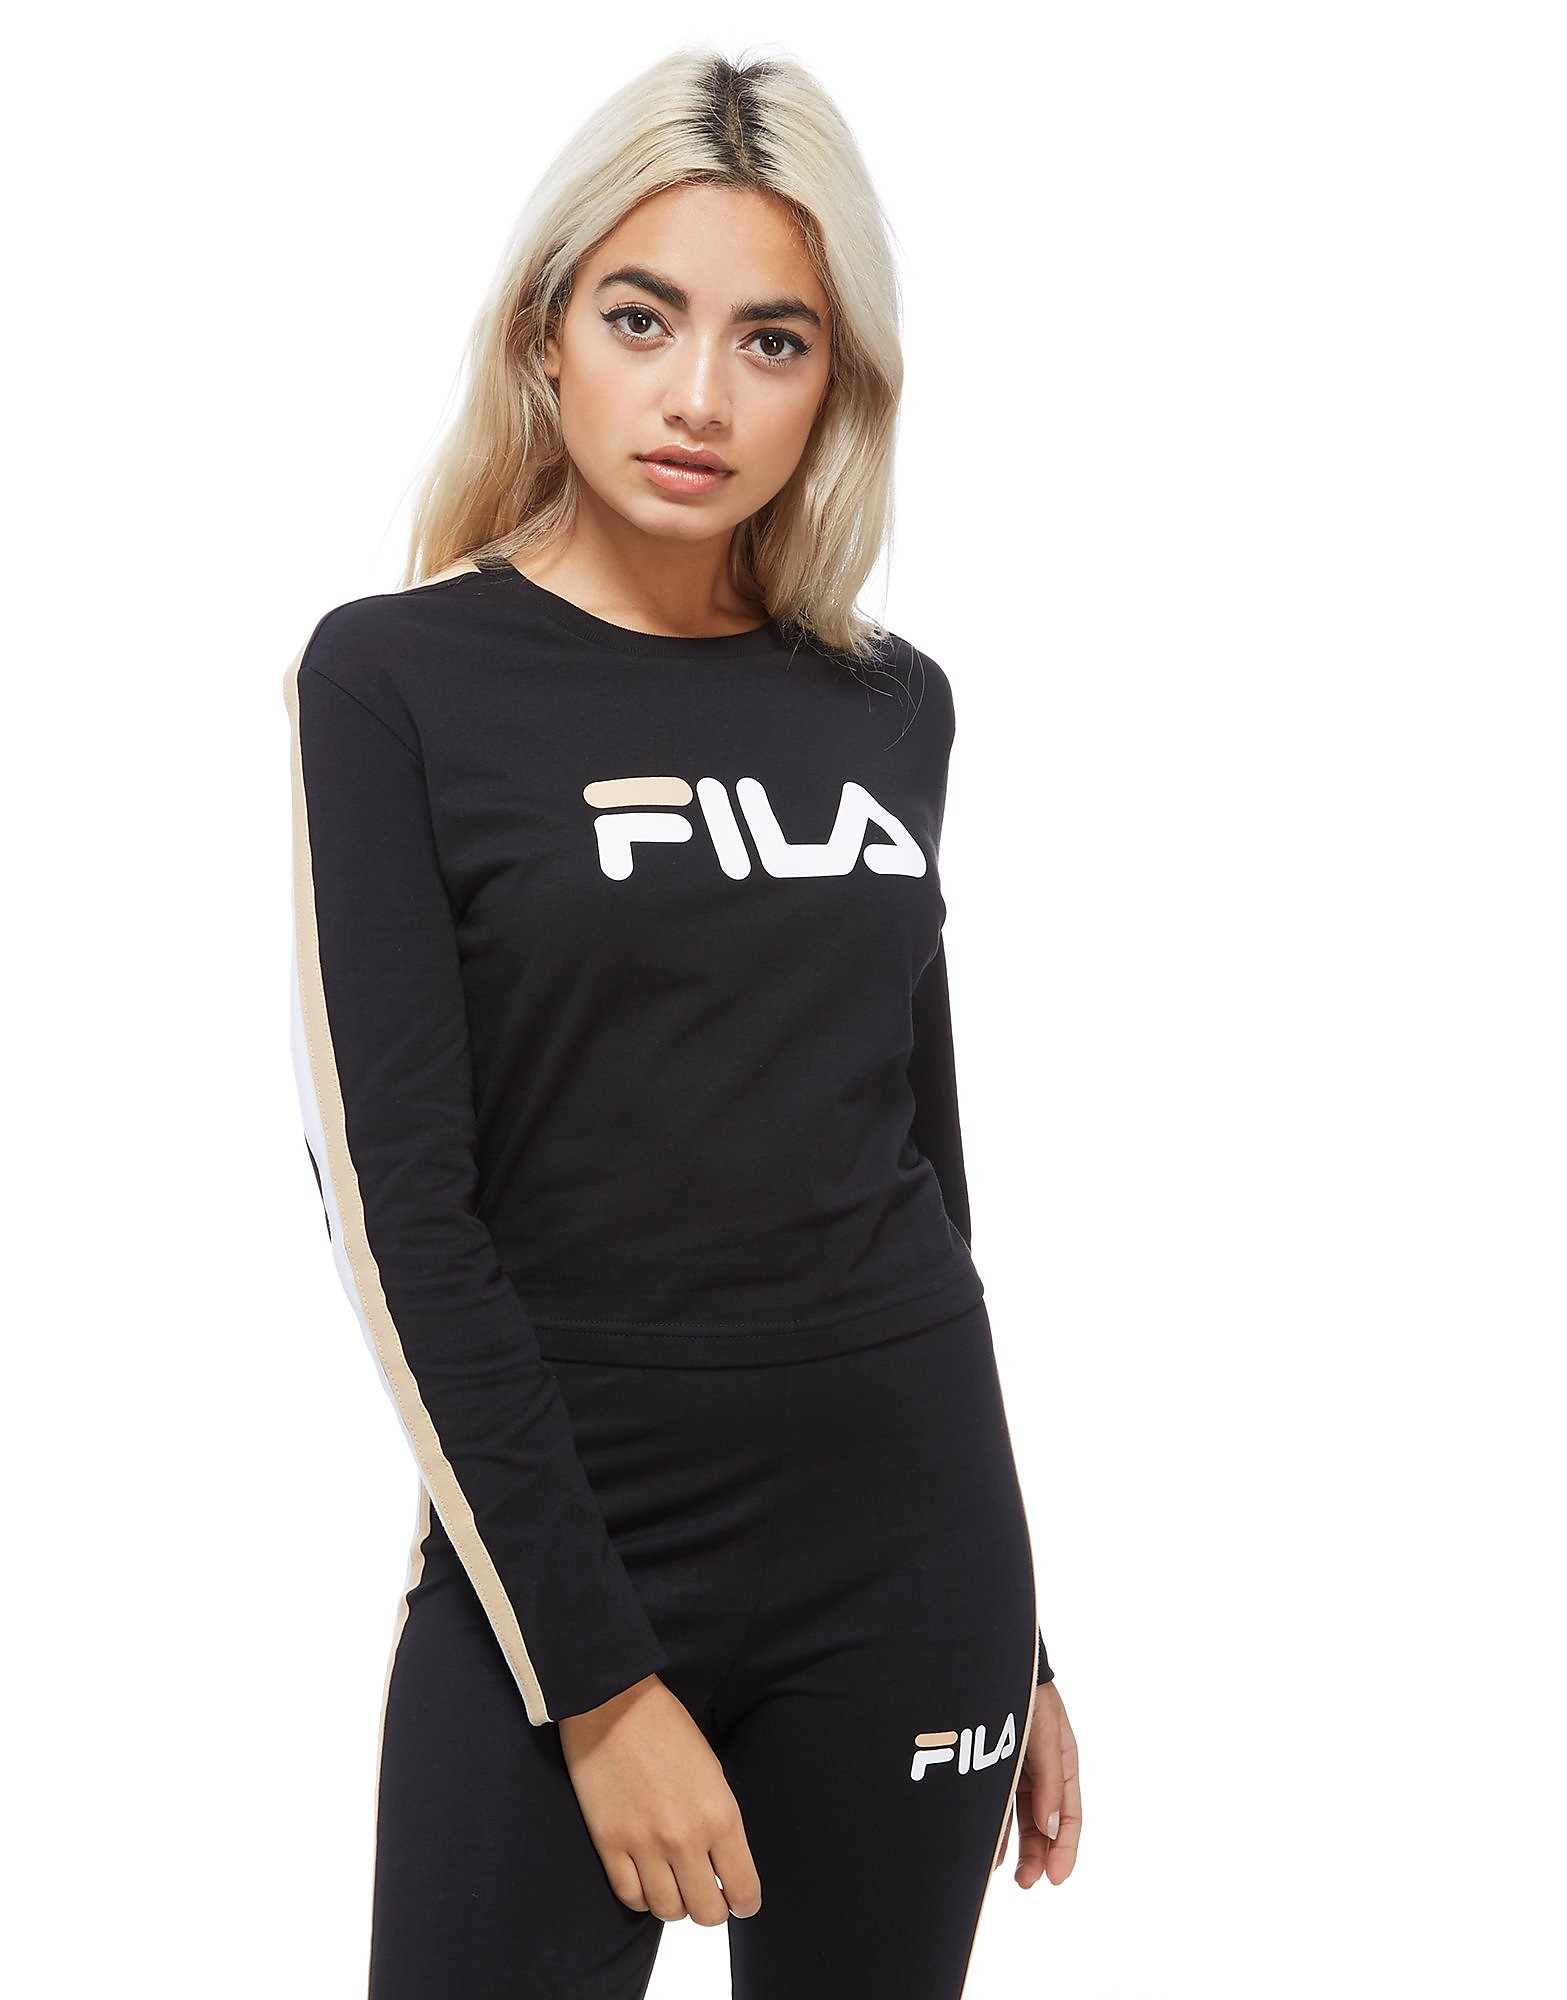 Fila Long Sleeve Crop Top